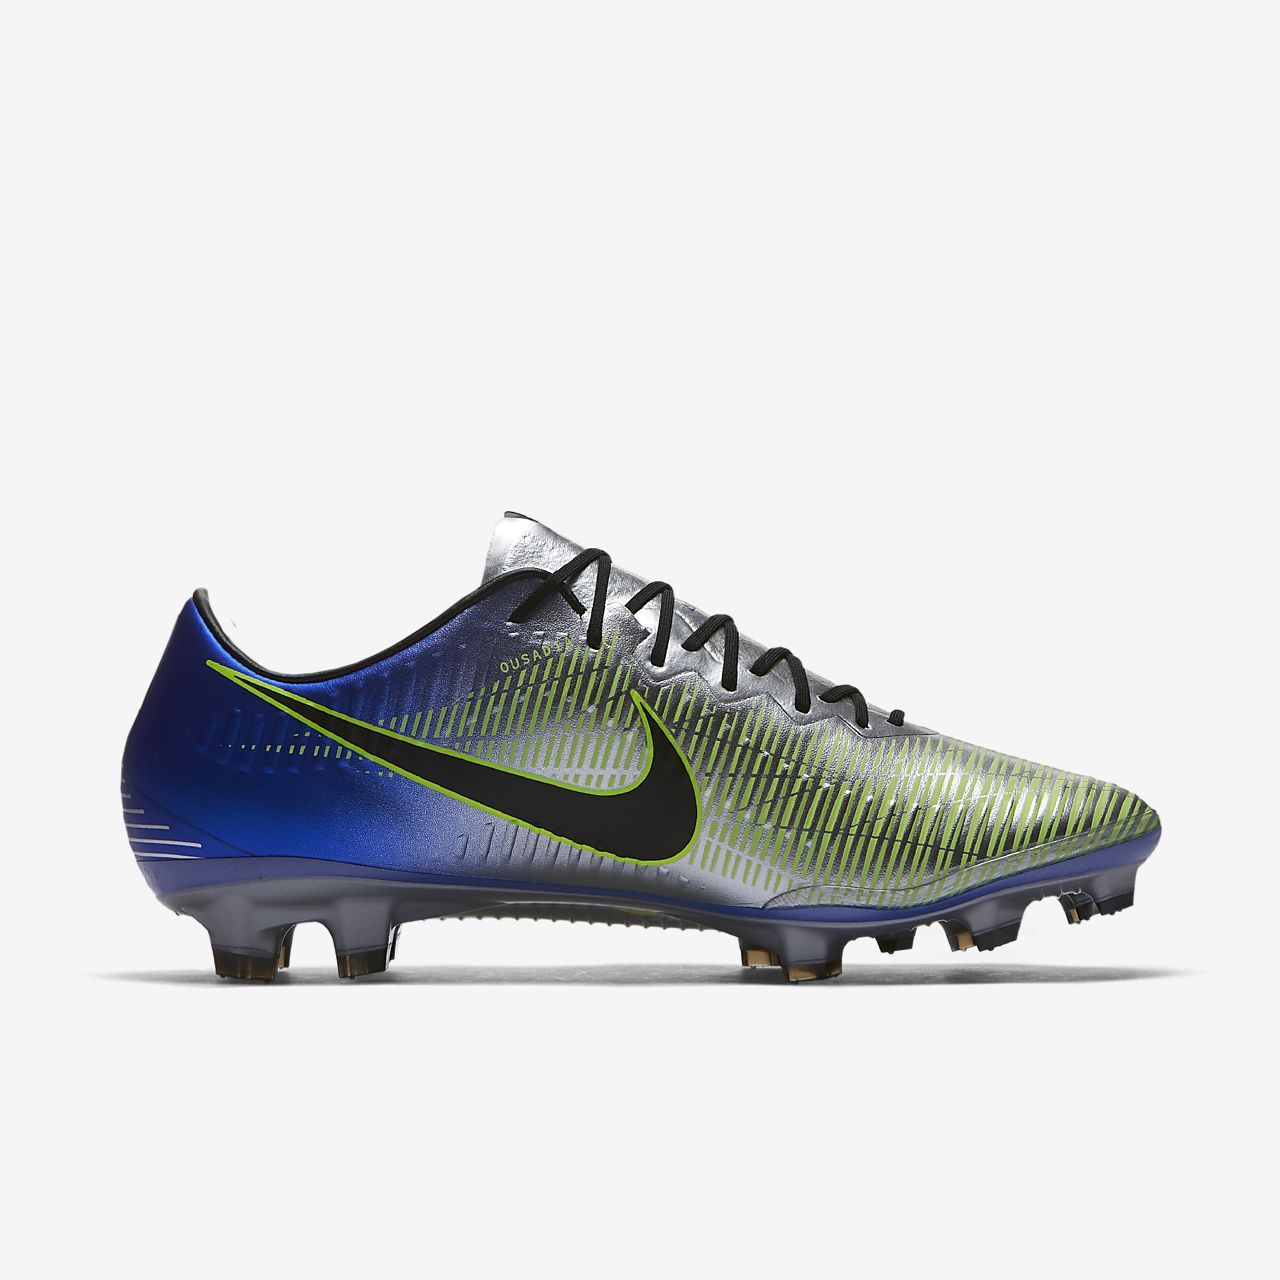 Soccer cleats · Image result for vapor neymar